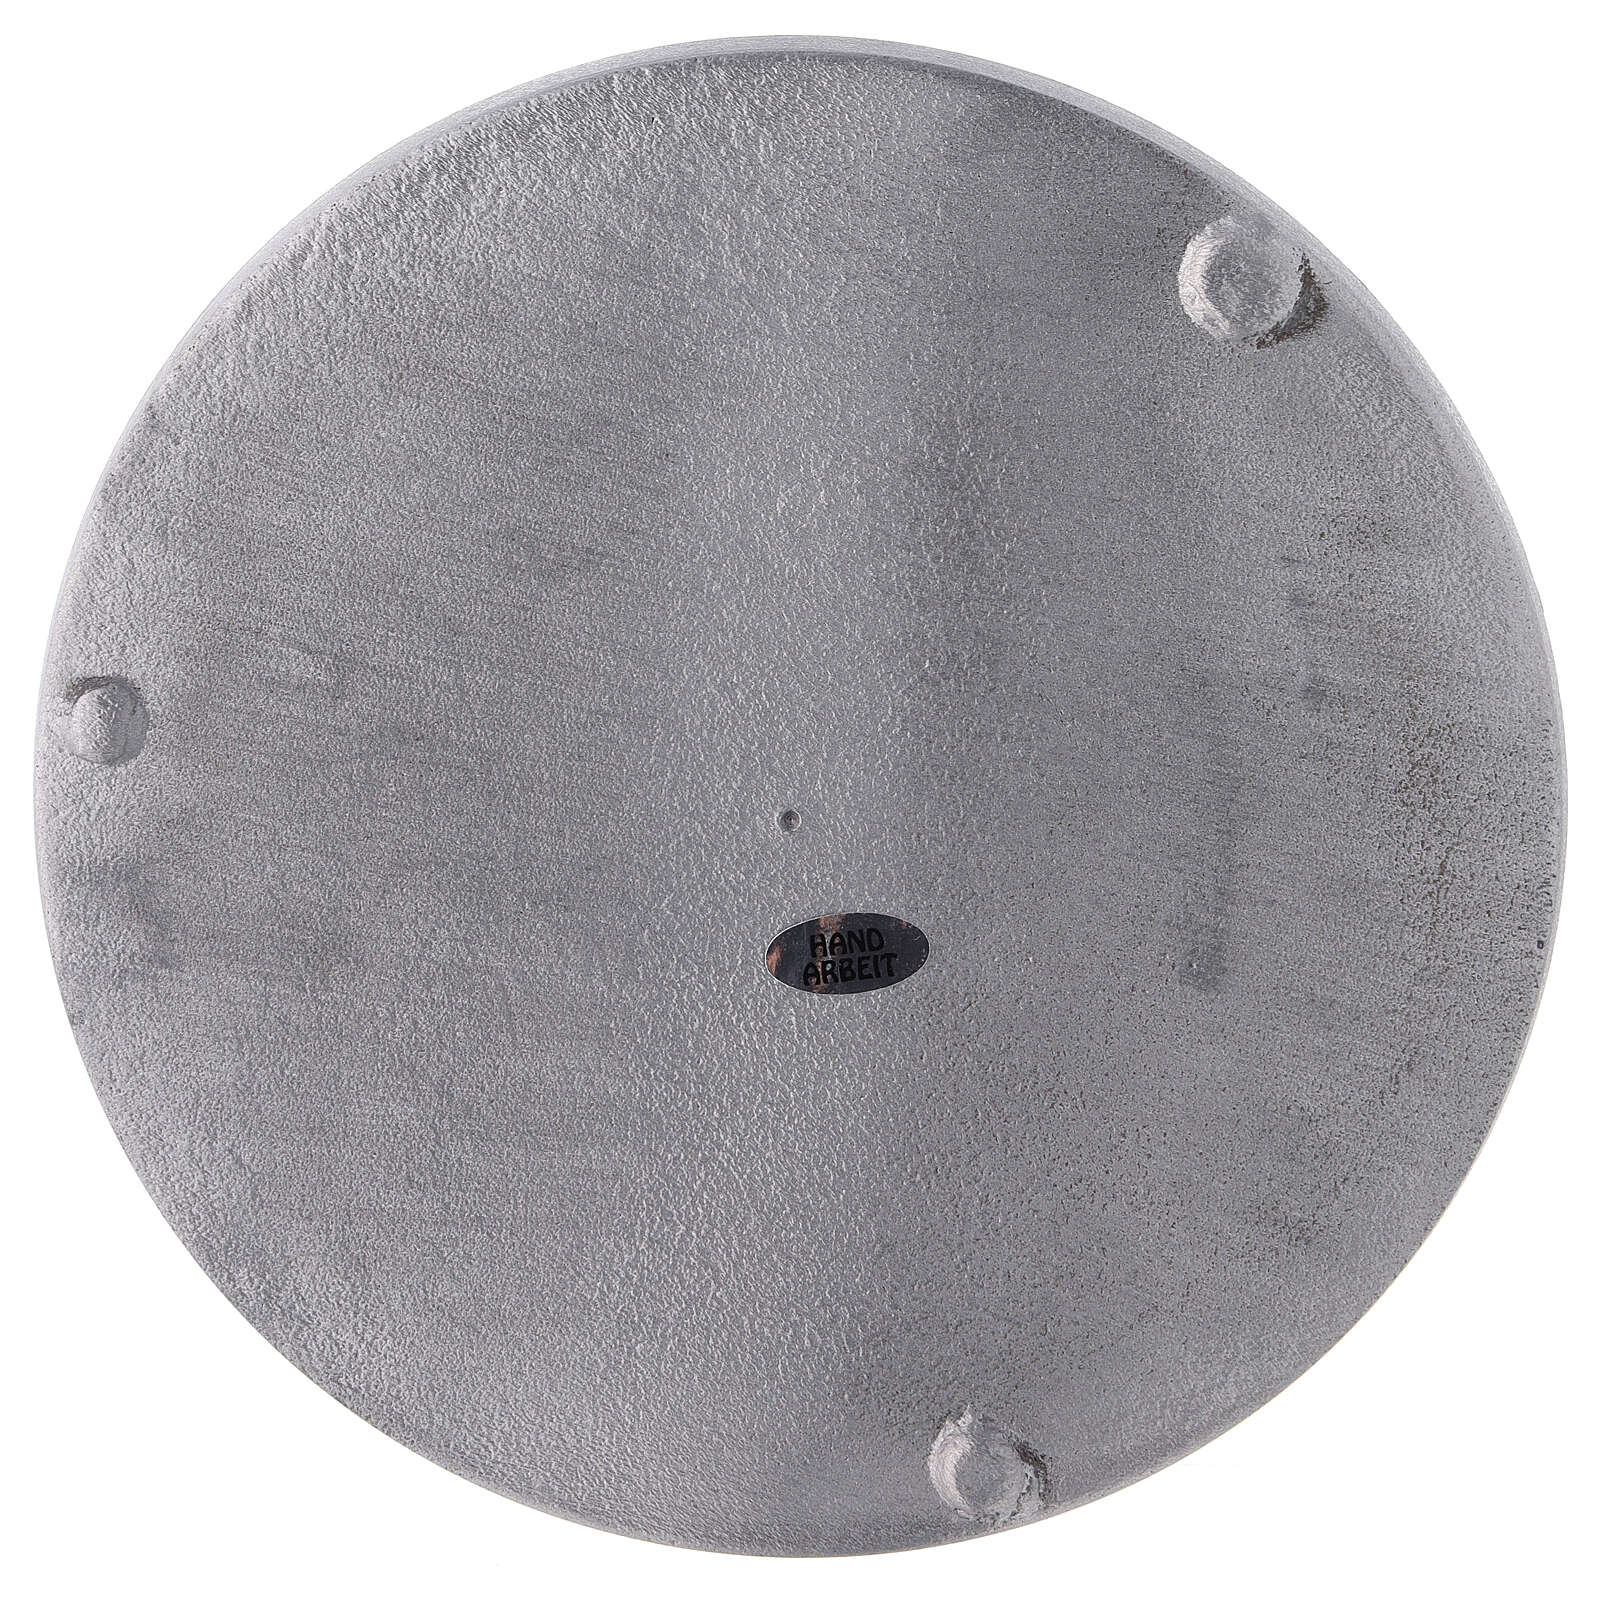 Round candle holder plate in satin finish aluminium d. 7 1/2 in 3